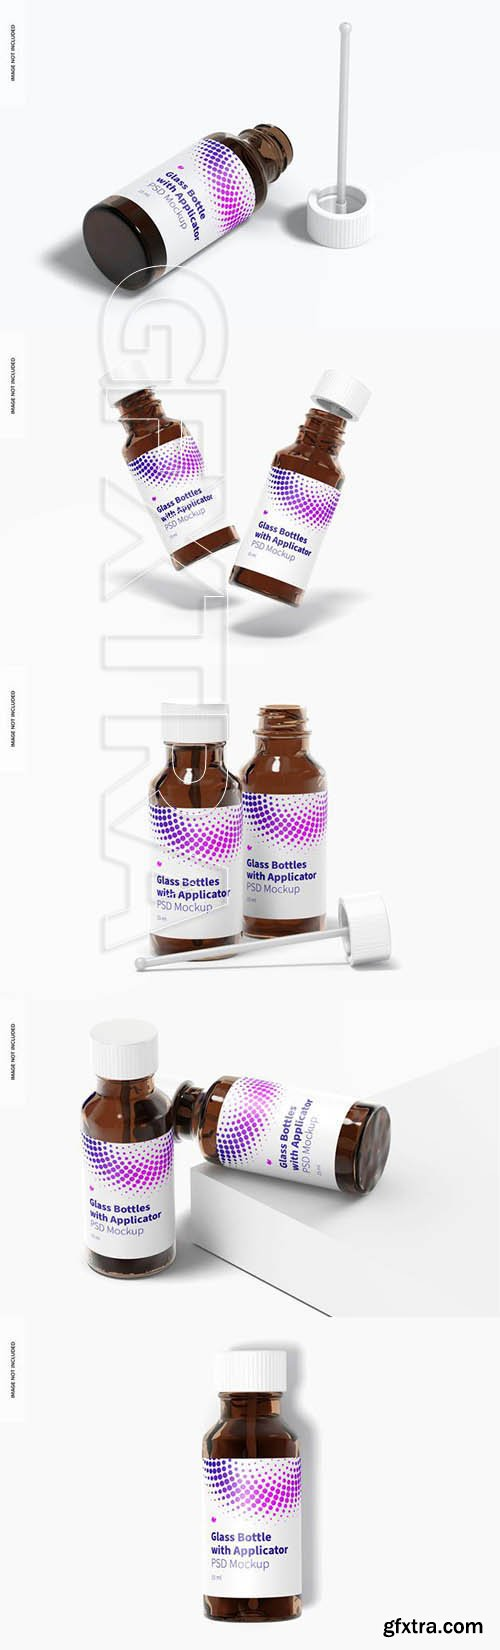 Round glass bottles with applicator rod mockup